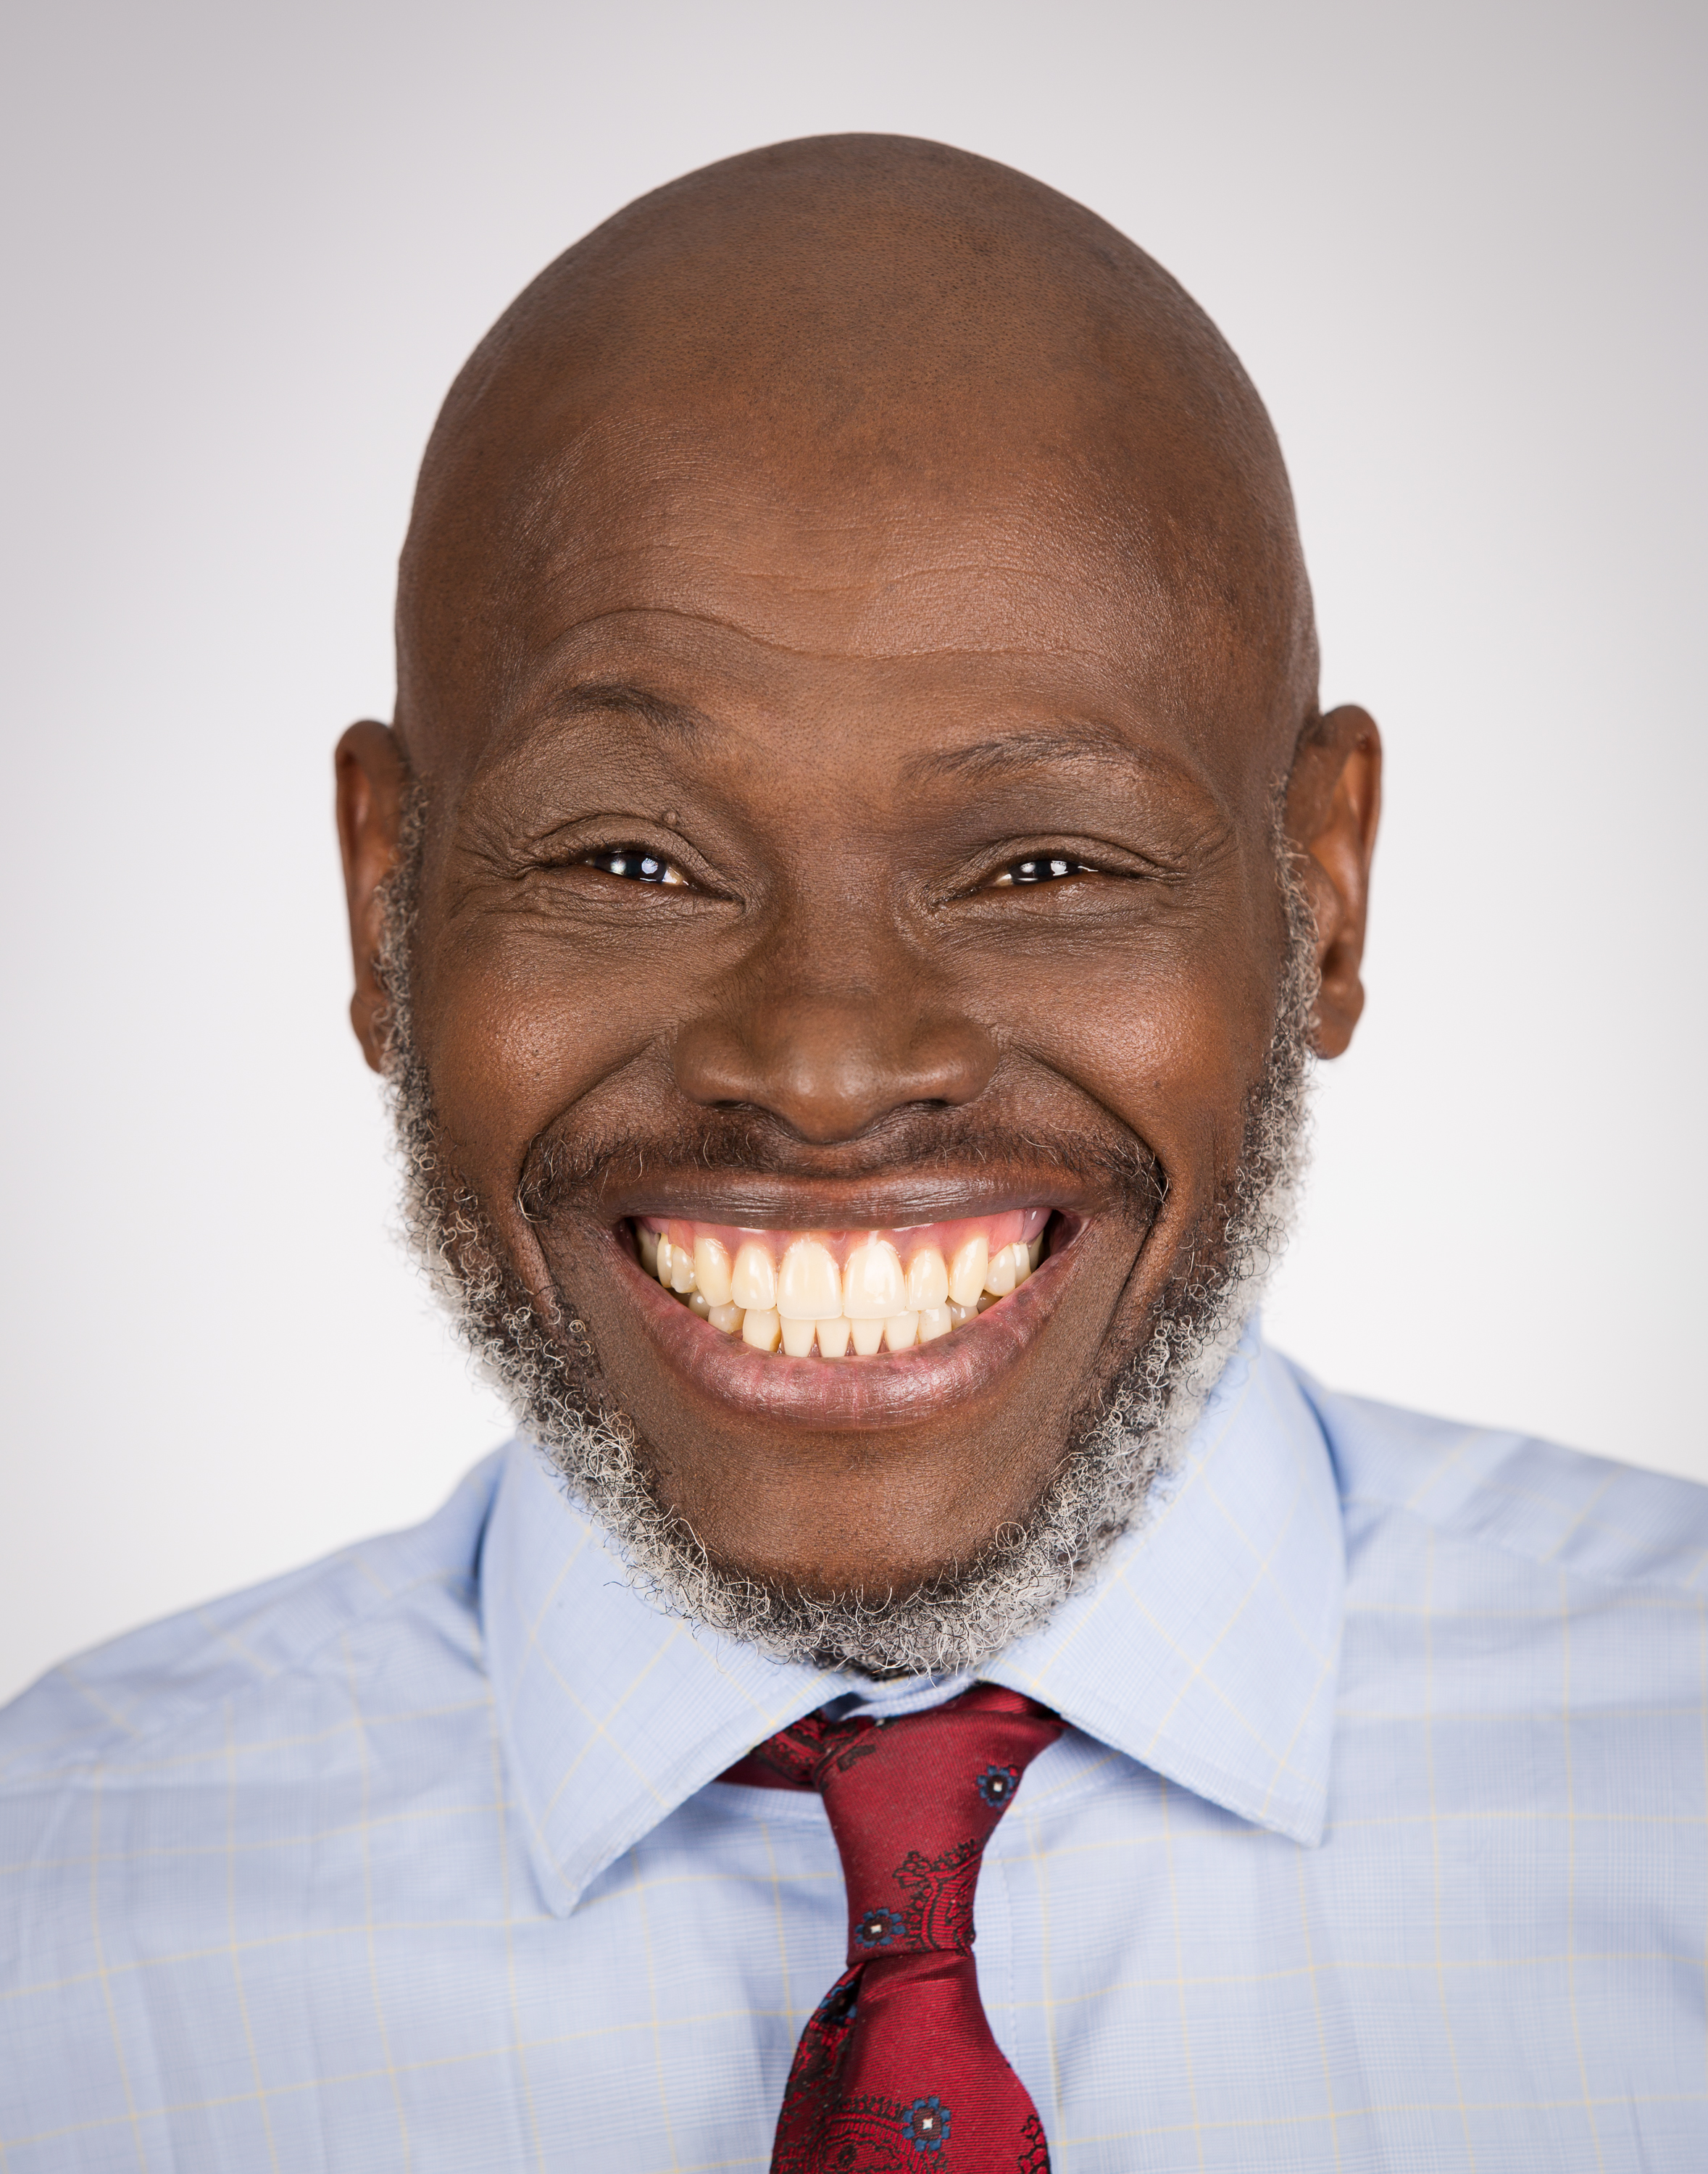 One of my favorite smiles! This portrait was taken for a dental office in Evanston, IL. This happy man is one of their patients and is clearly excited to be showing off his dental work. Makes me excited to go to the dentist!